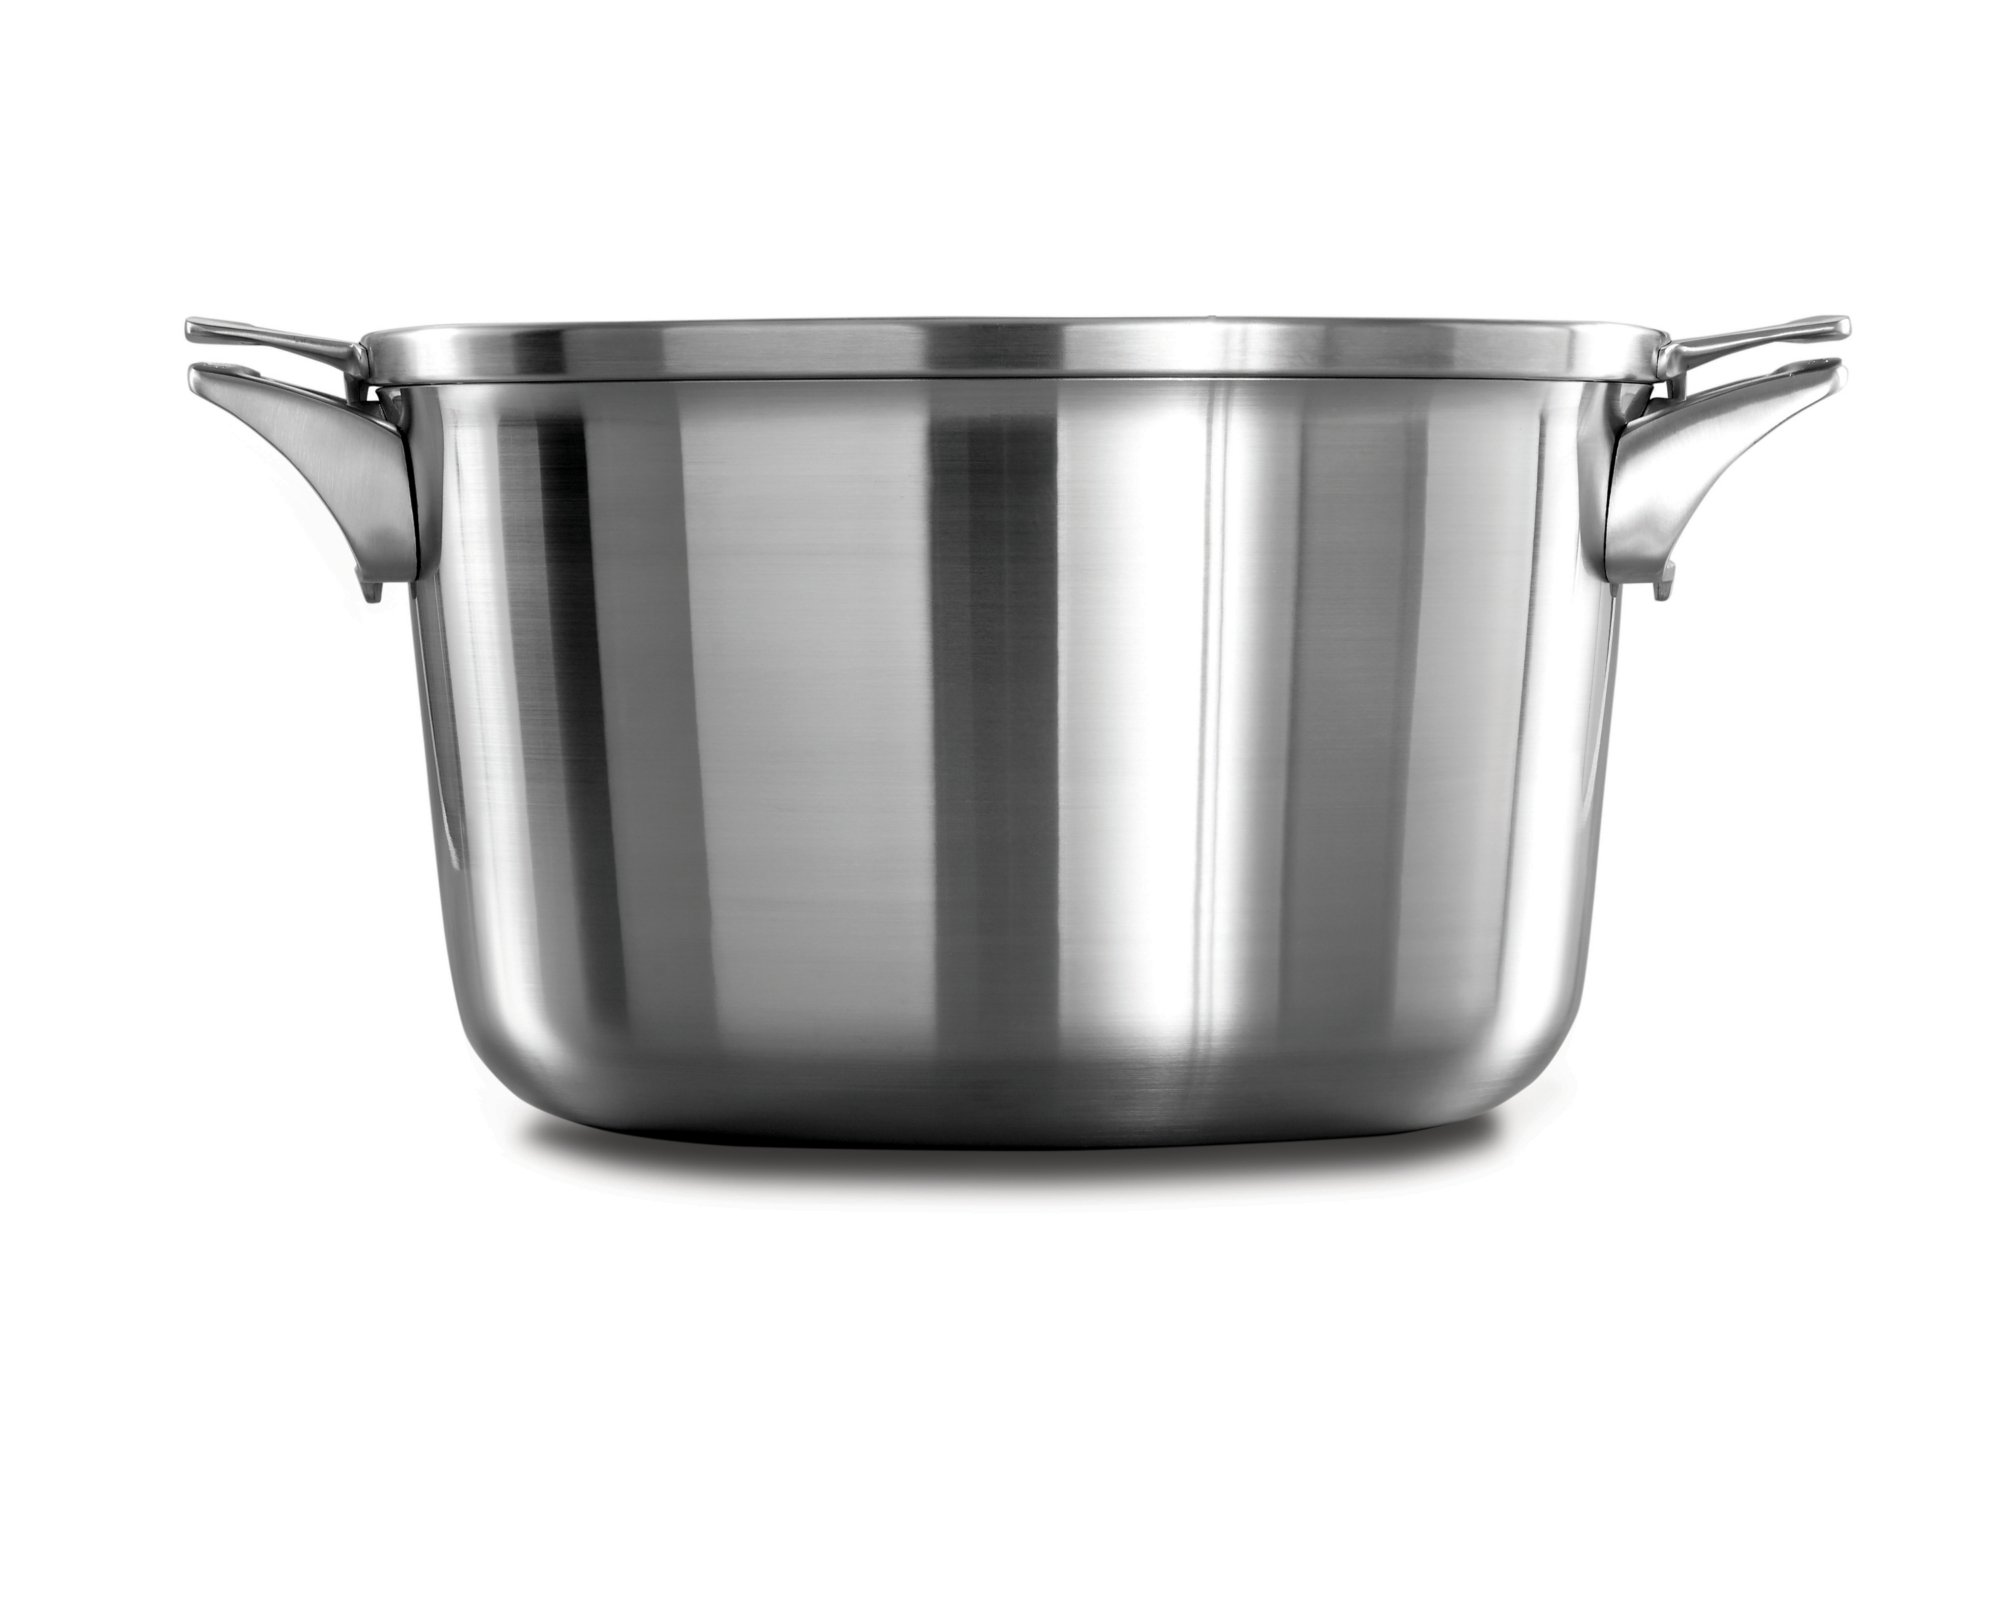 Calphalon Premier? Space Saving Stainless Steel 12 qt. Stock Pot with Cover